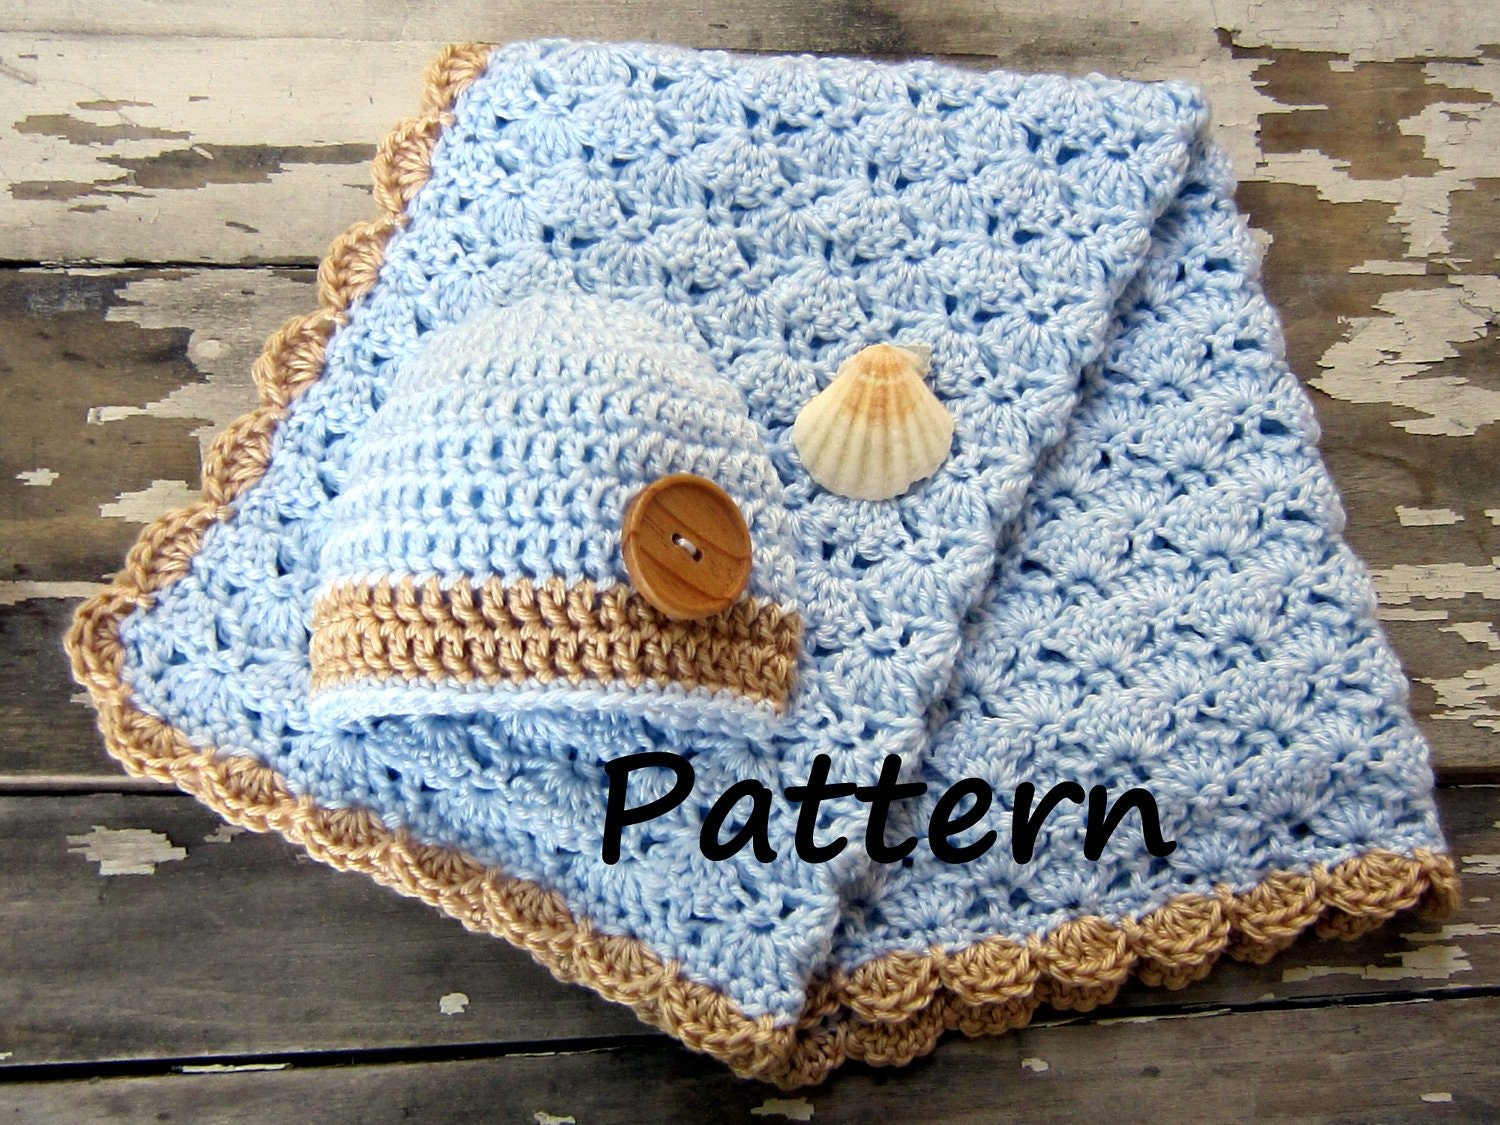 Free Crochet Patterns For Baby Hats And Blankets : Items similar to Crochet Baby Blanket Pattern - Baby ...